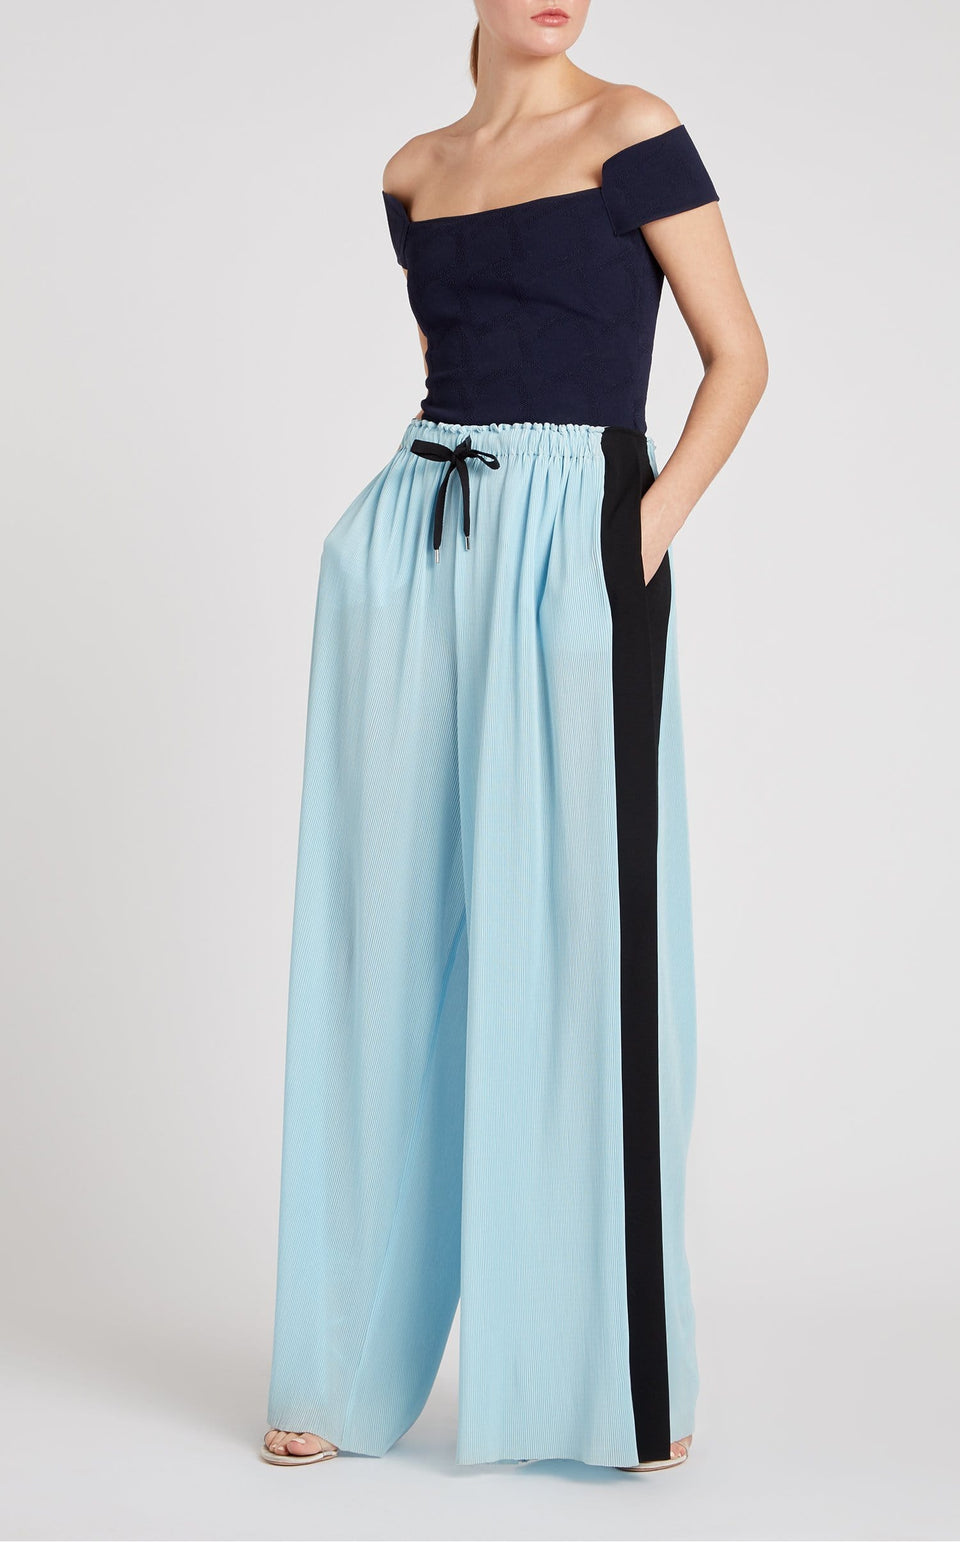 Haven Trouser In Ice Blue/Black from Roland Mouret